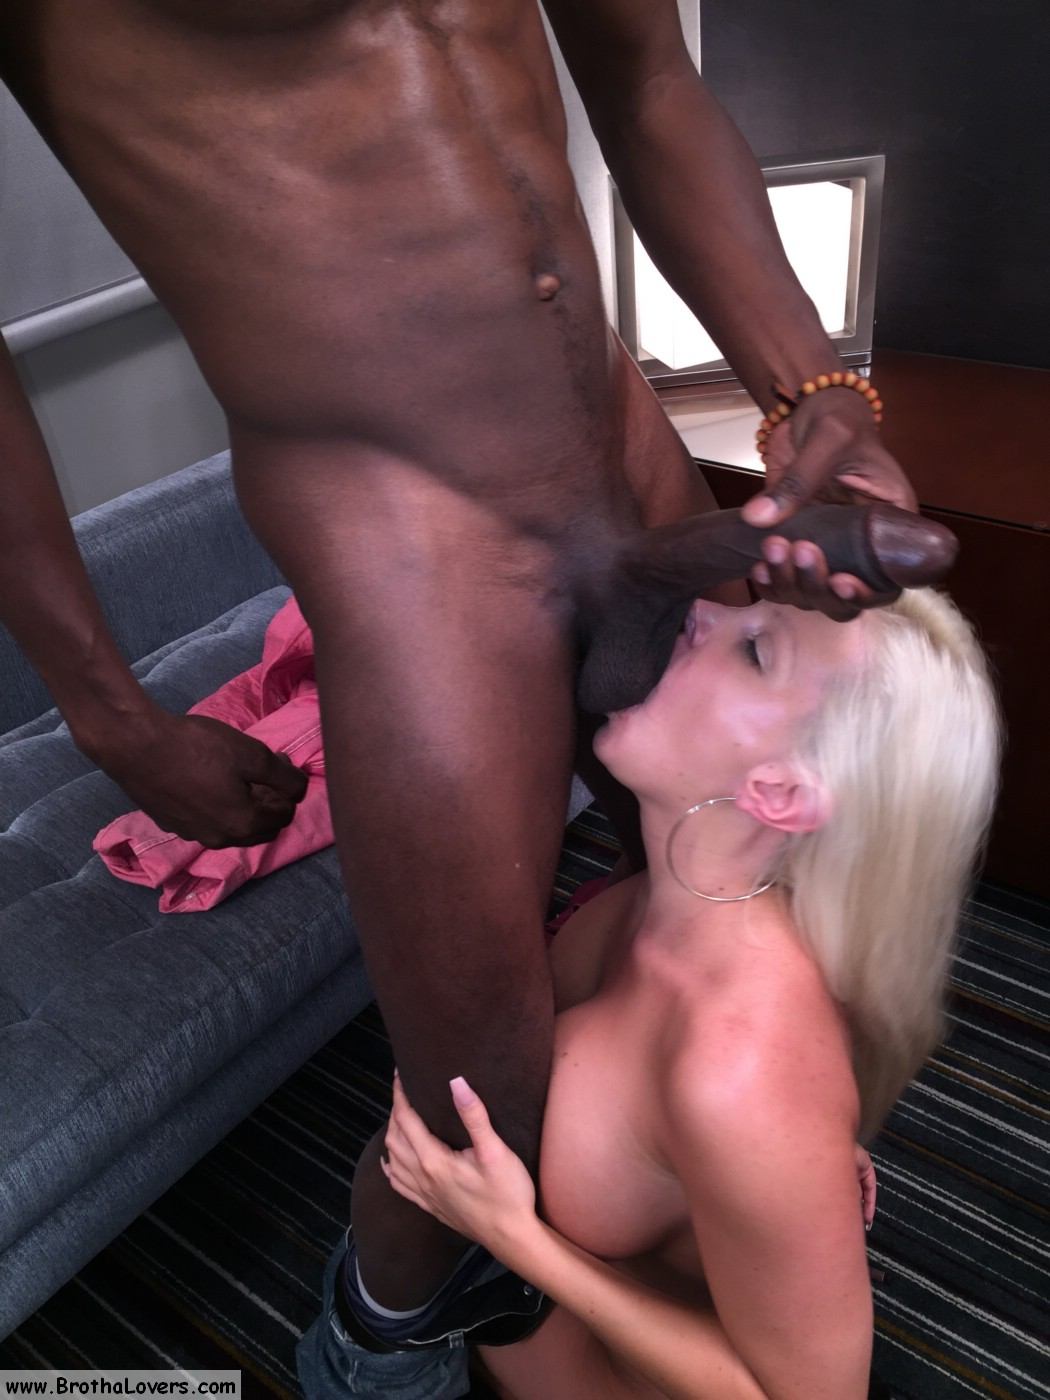 Cheating wife meets black lover in hotels - 2 part 1